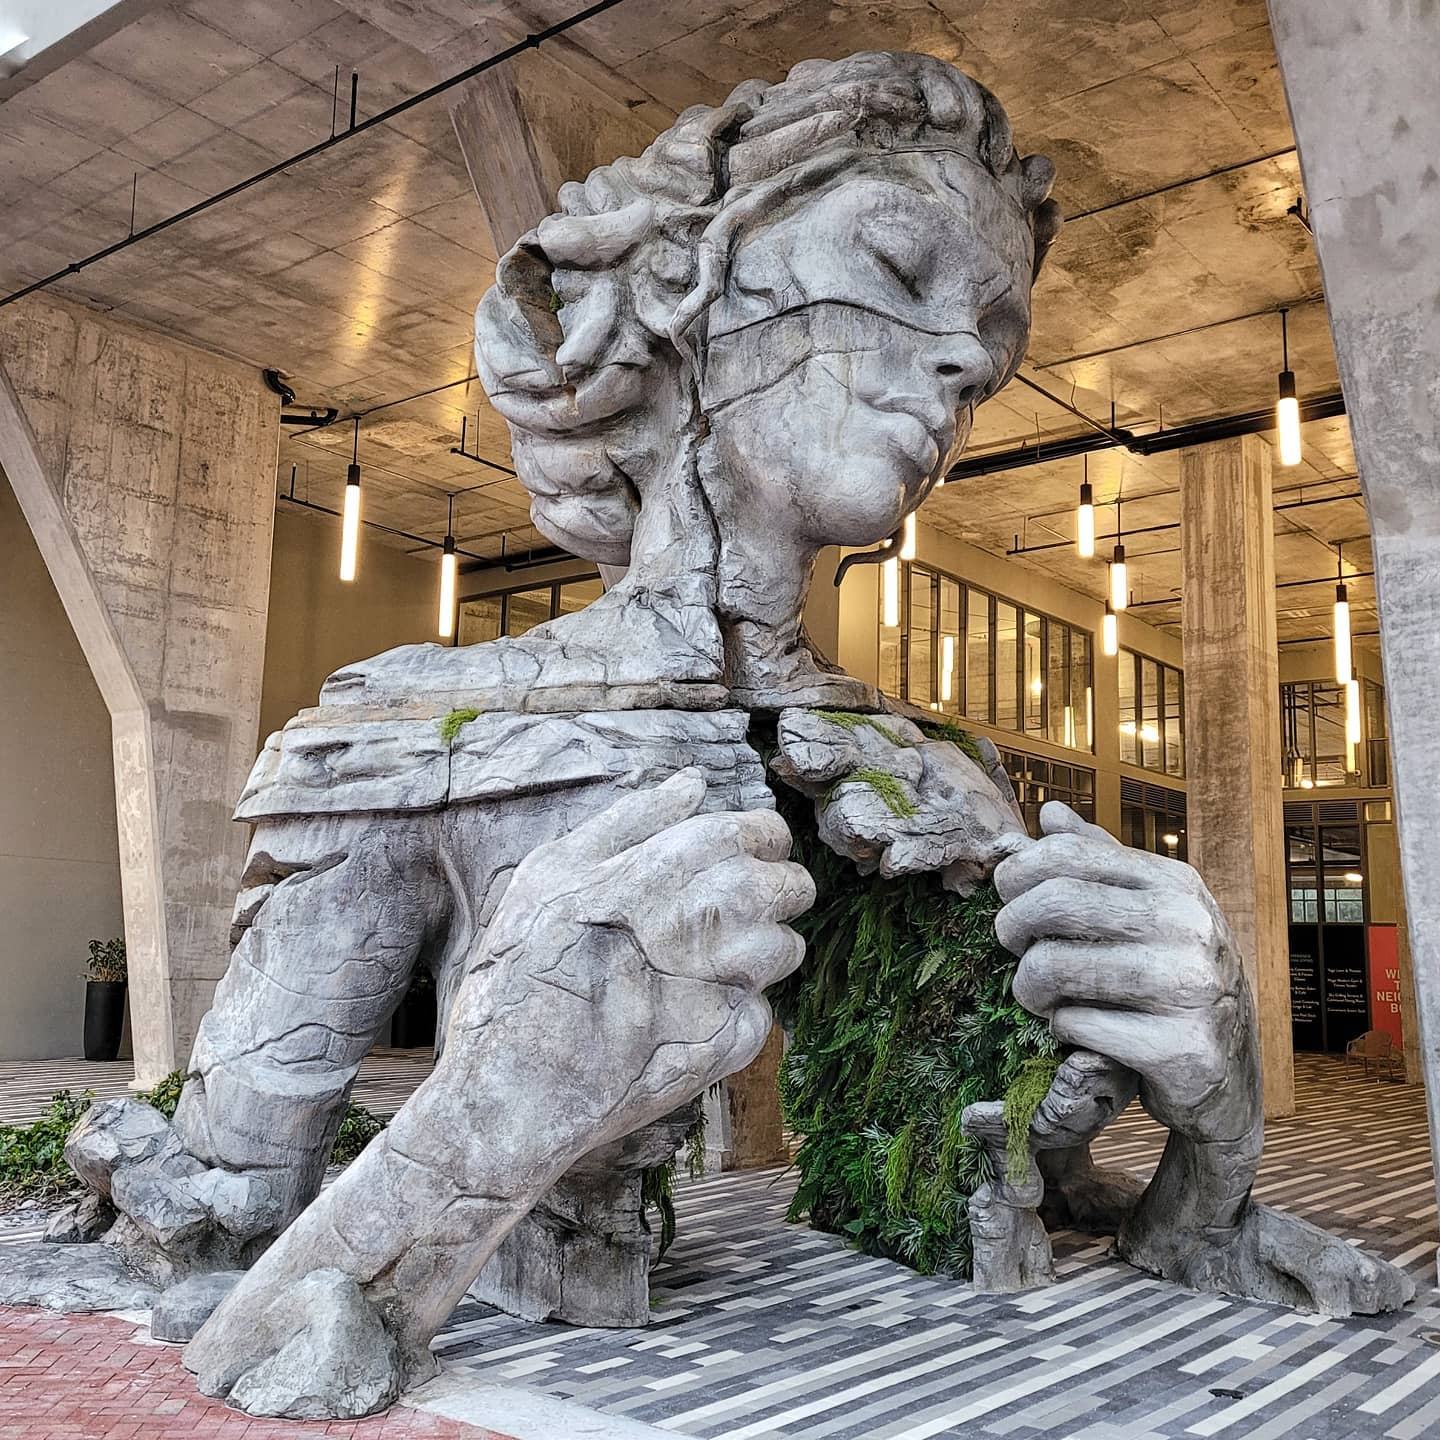 A Monumental Figure Reveals a Fern-Canopied Tunnel Inside Its Chest in Sculpture by Daniel Popper